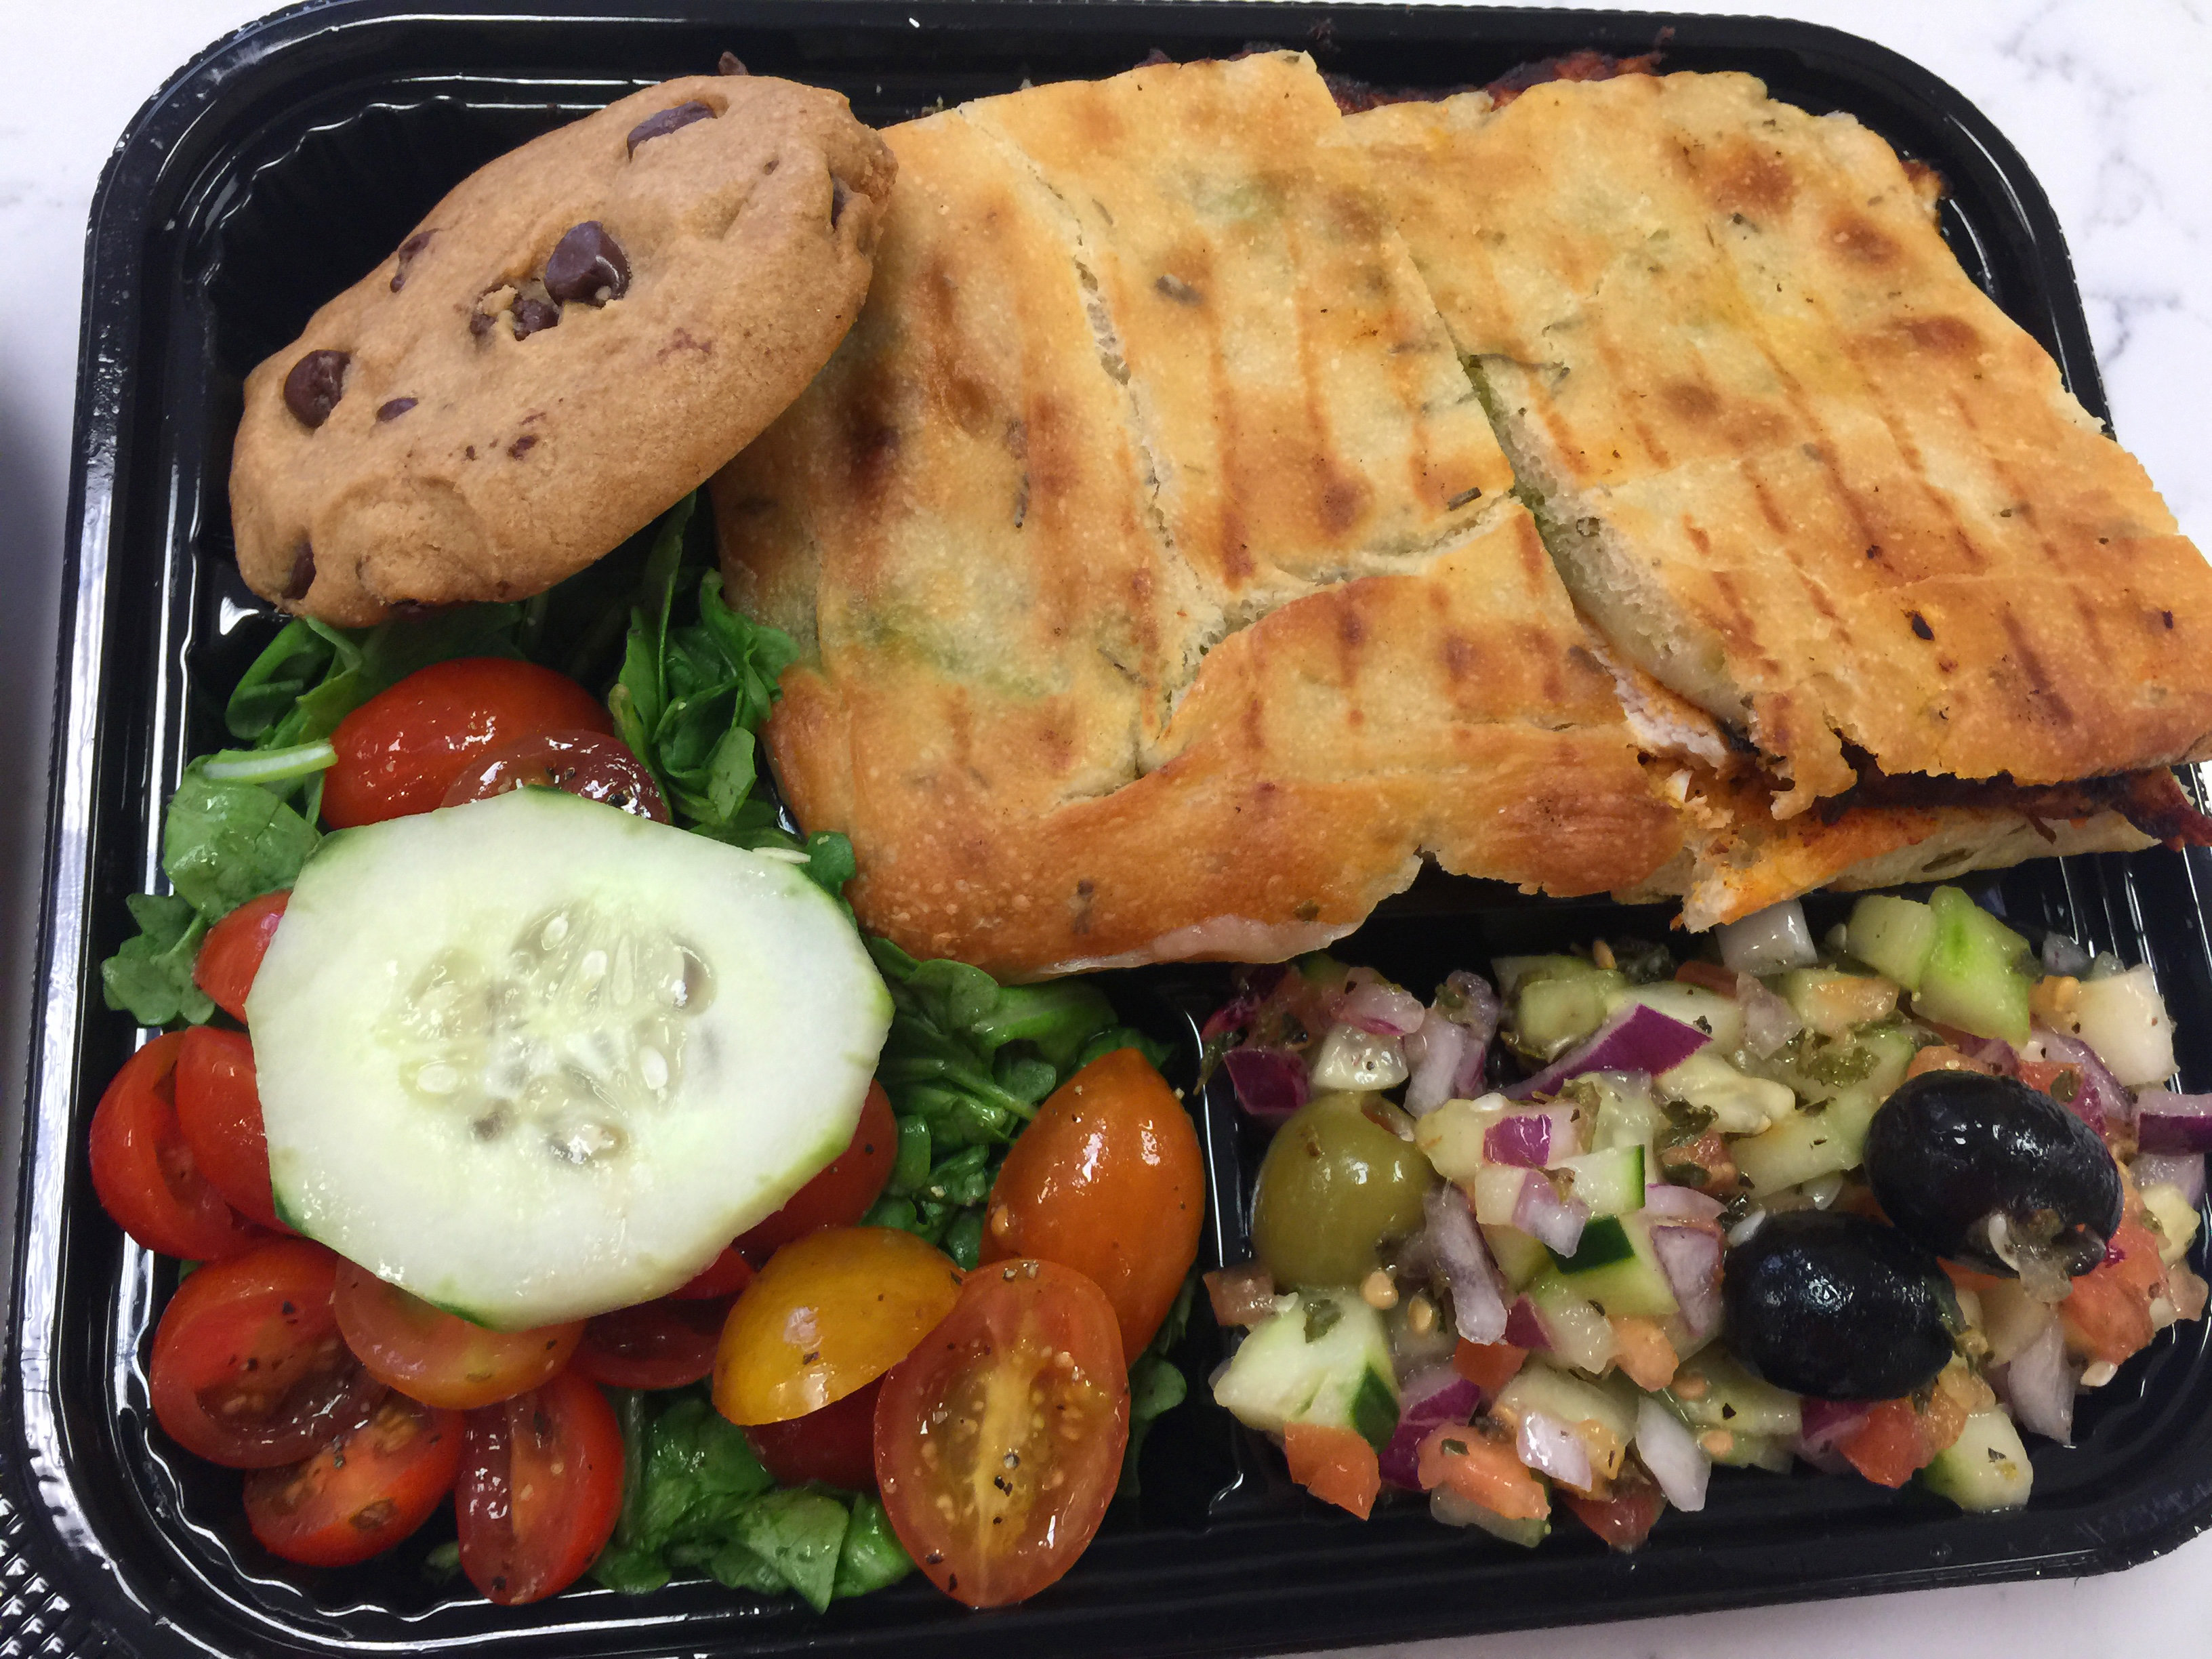 Boxed Lunch Sandwiches 401